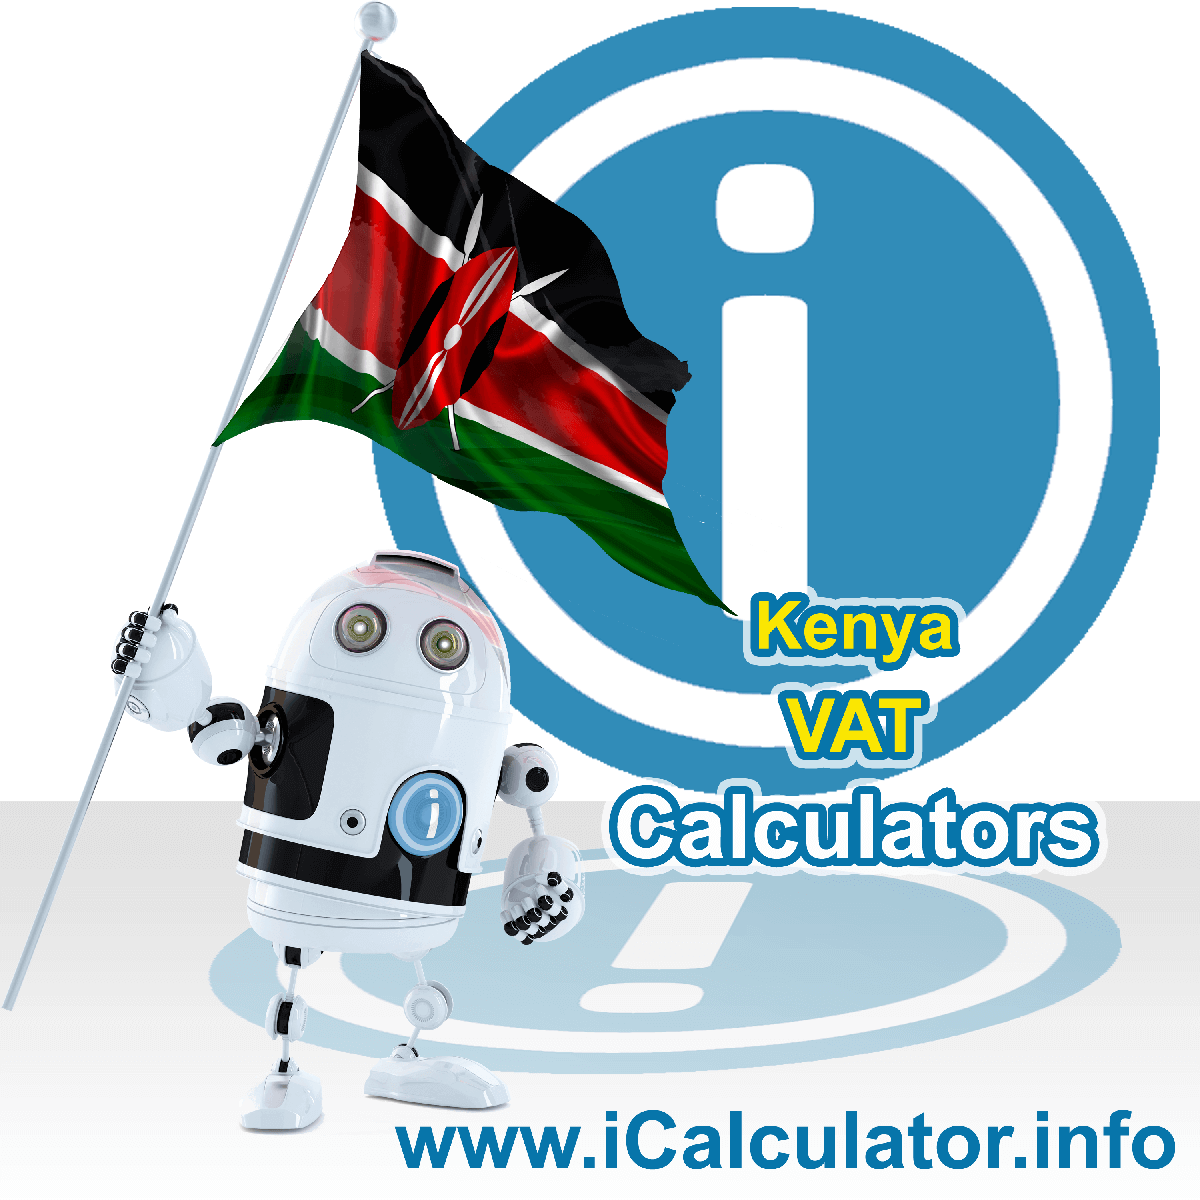 Kenya VAT Calculator. This image shows the Kenya flag and information relating to the VAT formula used for calculating Value Added Tax in Kenya using the Kenya VAT Calculator in 2021